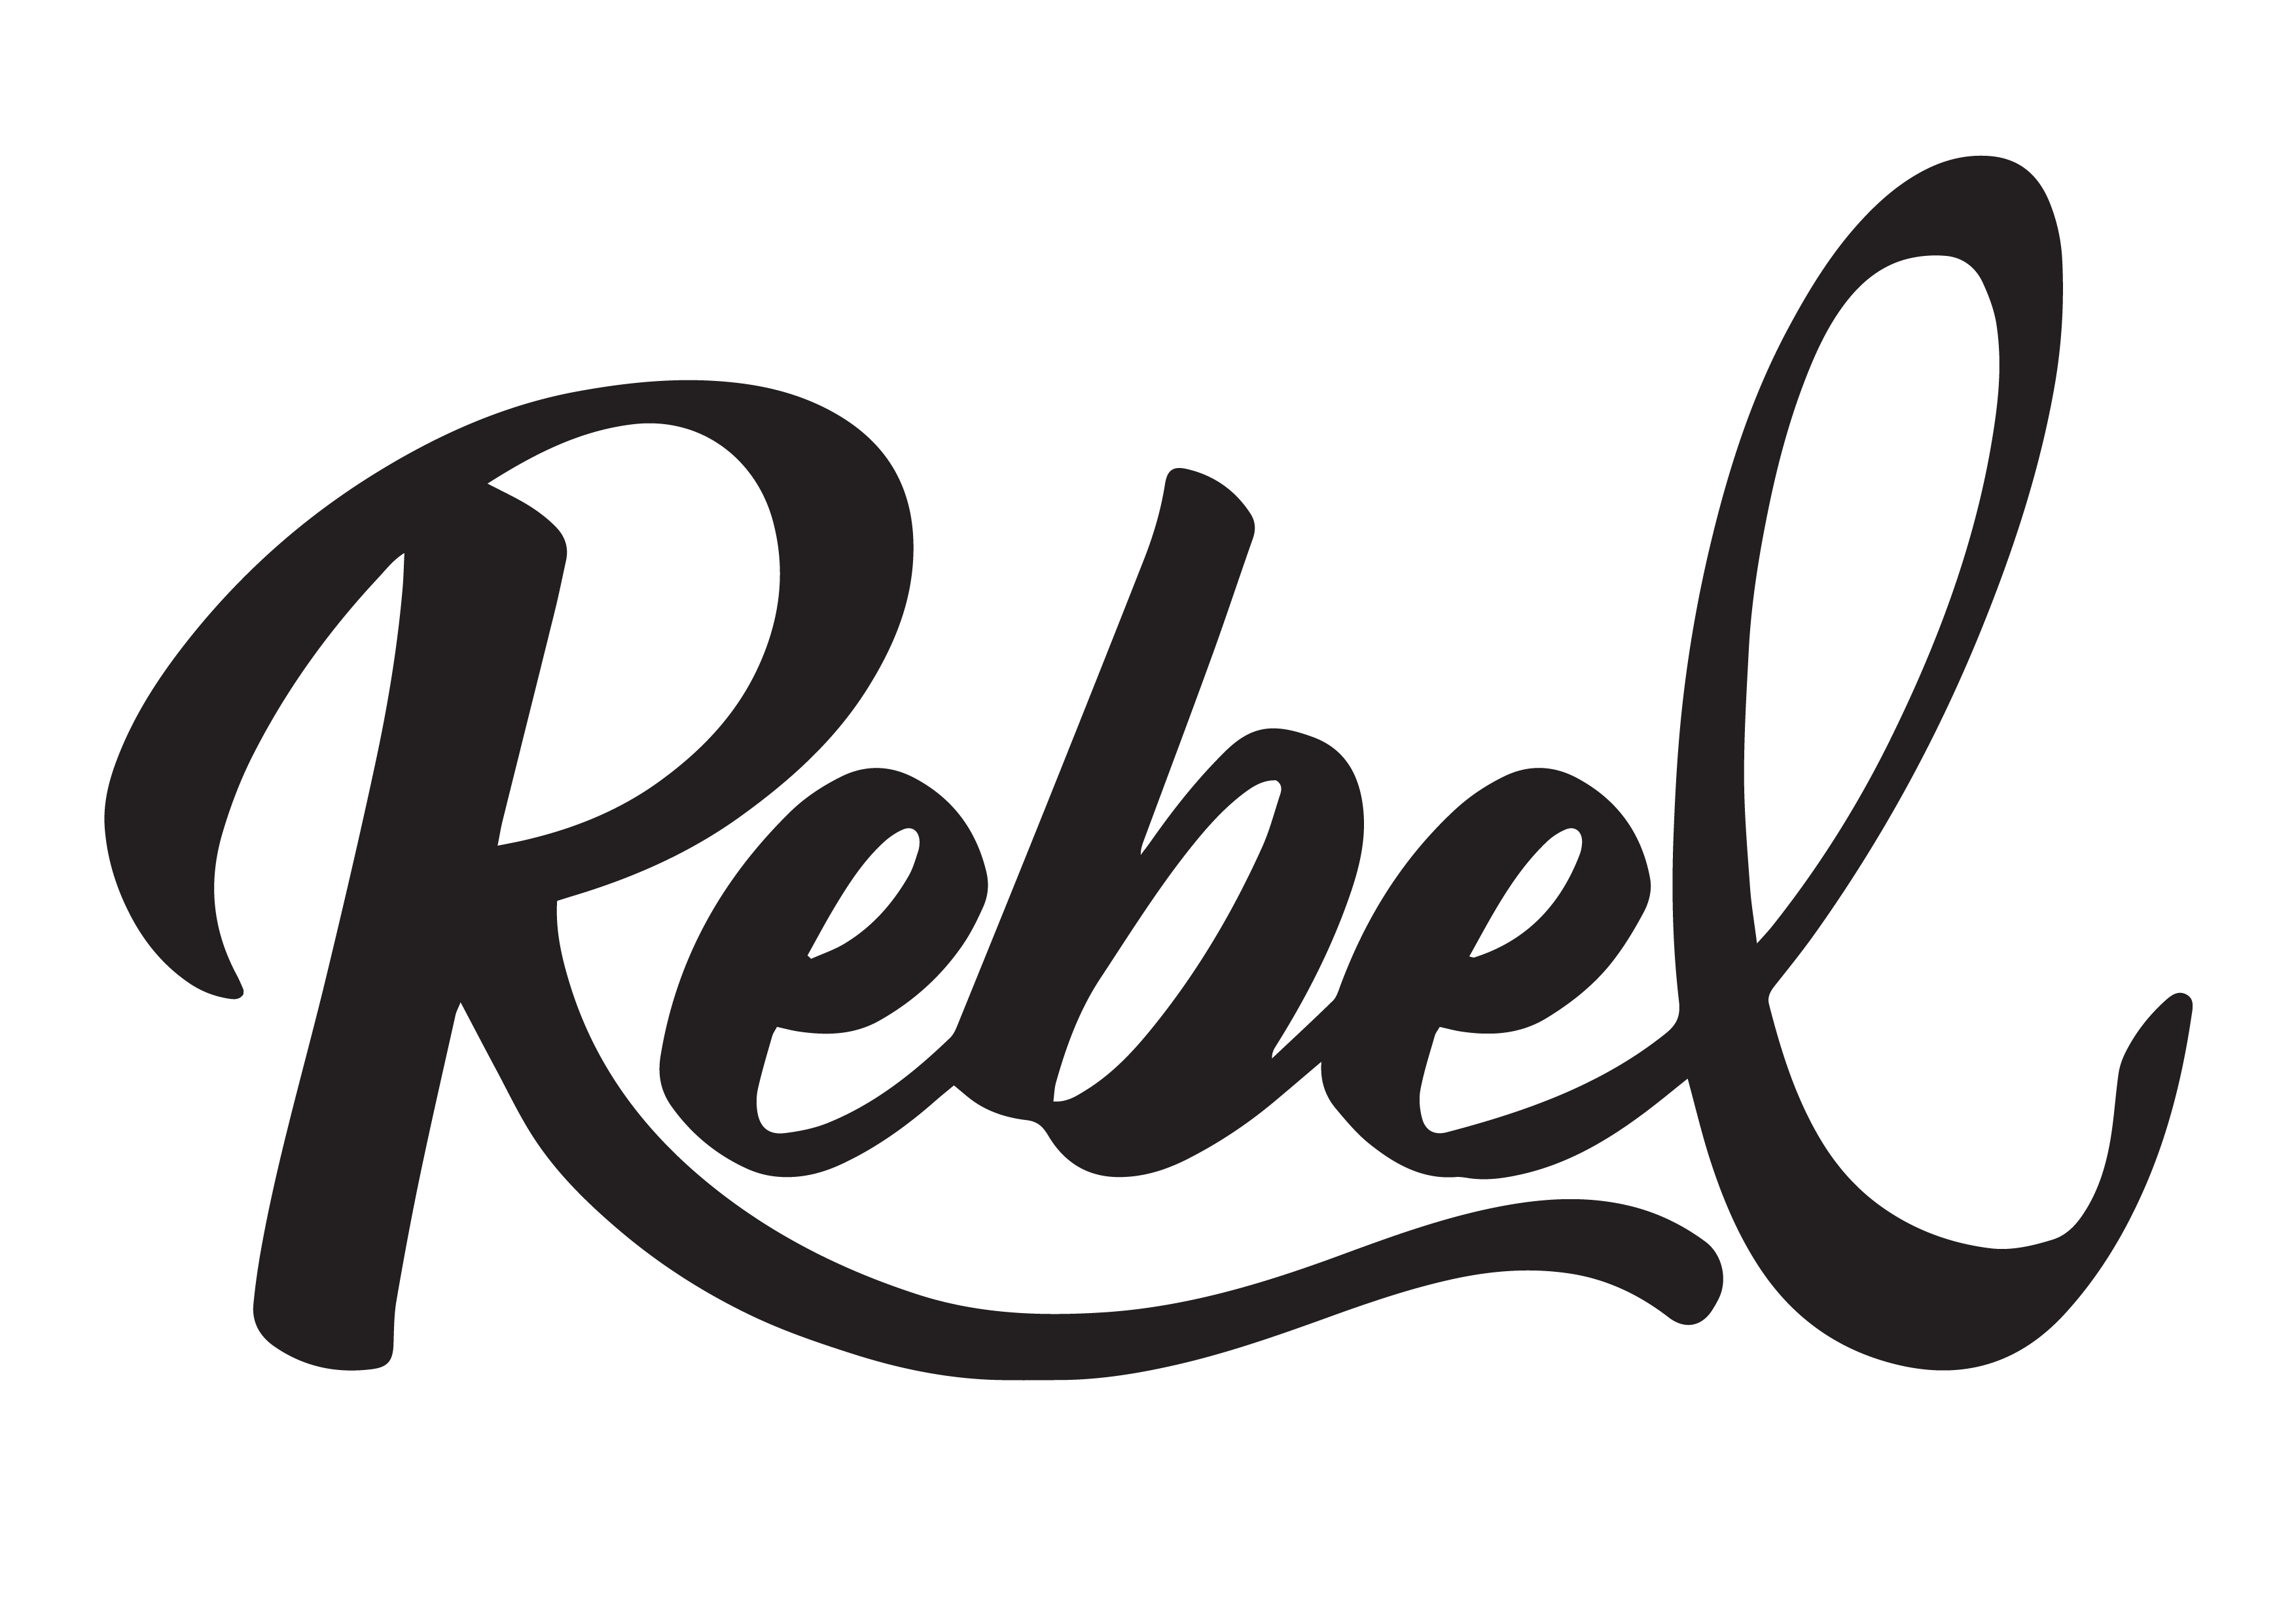 Rebel Ice Cream